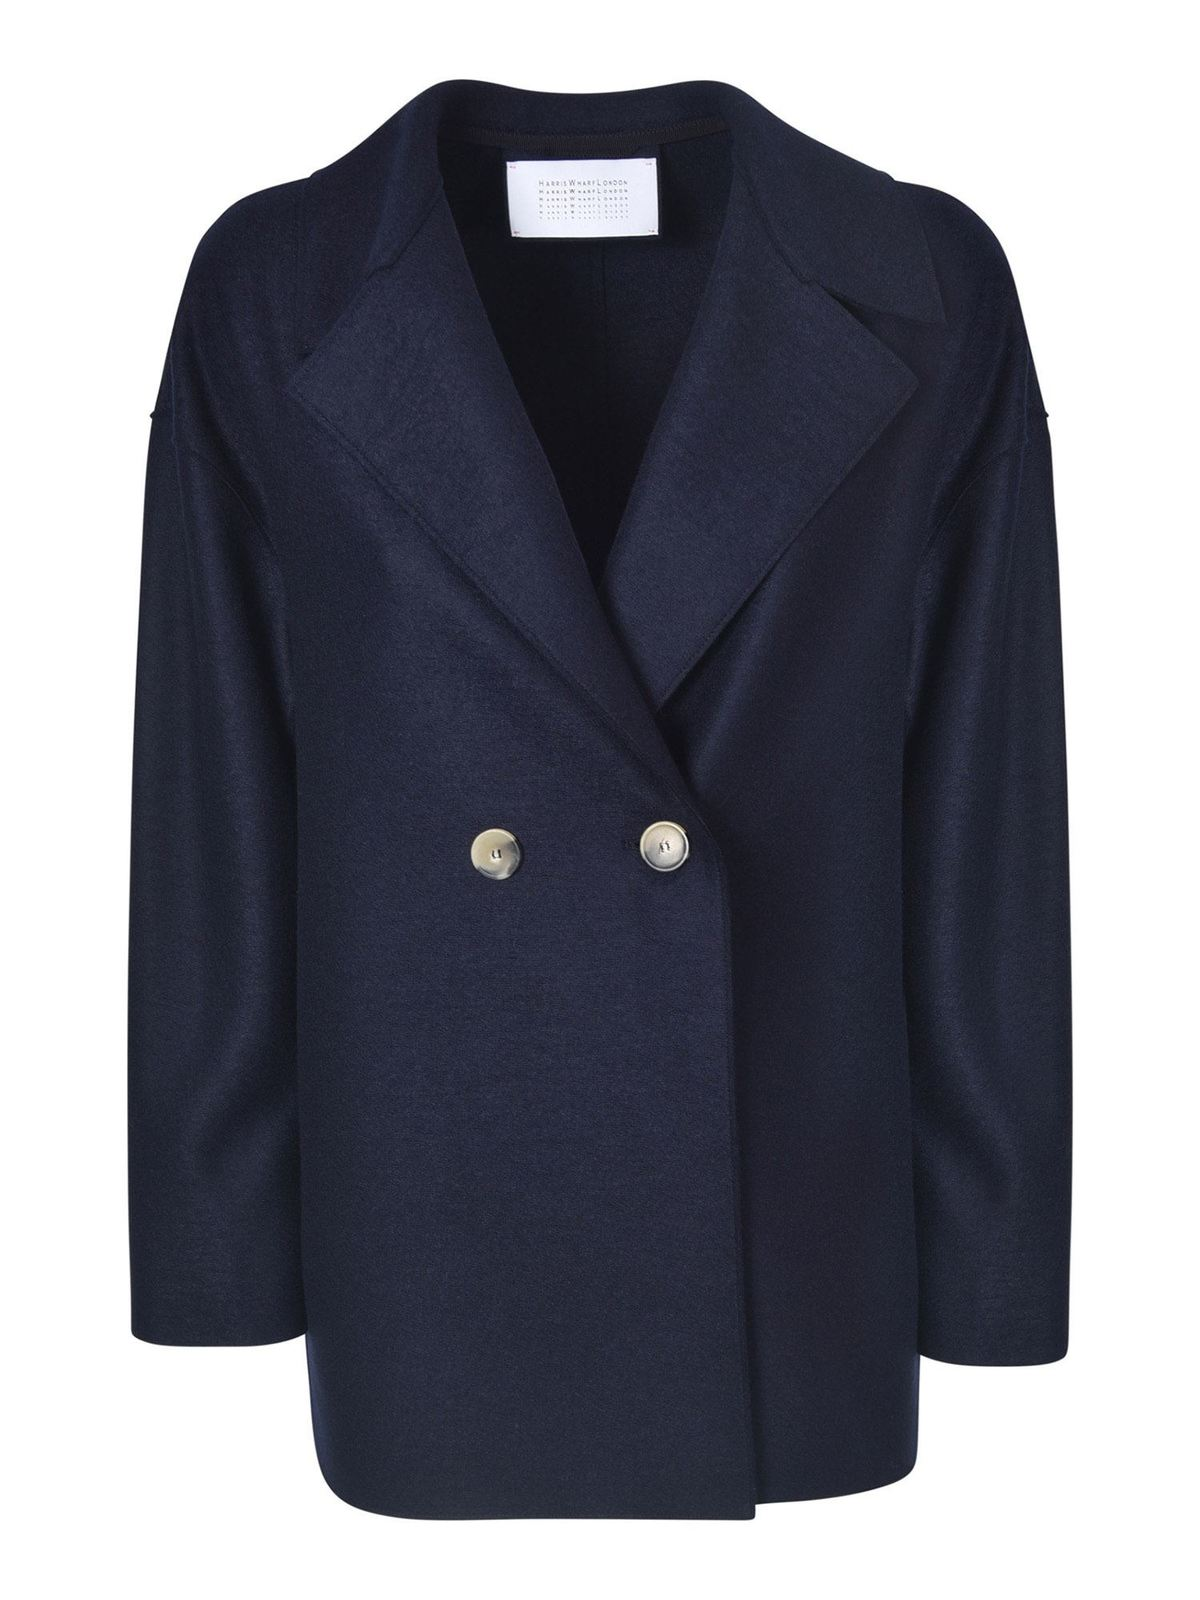 Harris Wharf London DOUBLE-BREASTED COAT IN NAVY BLUE